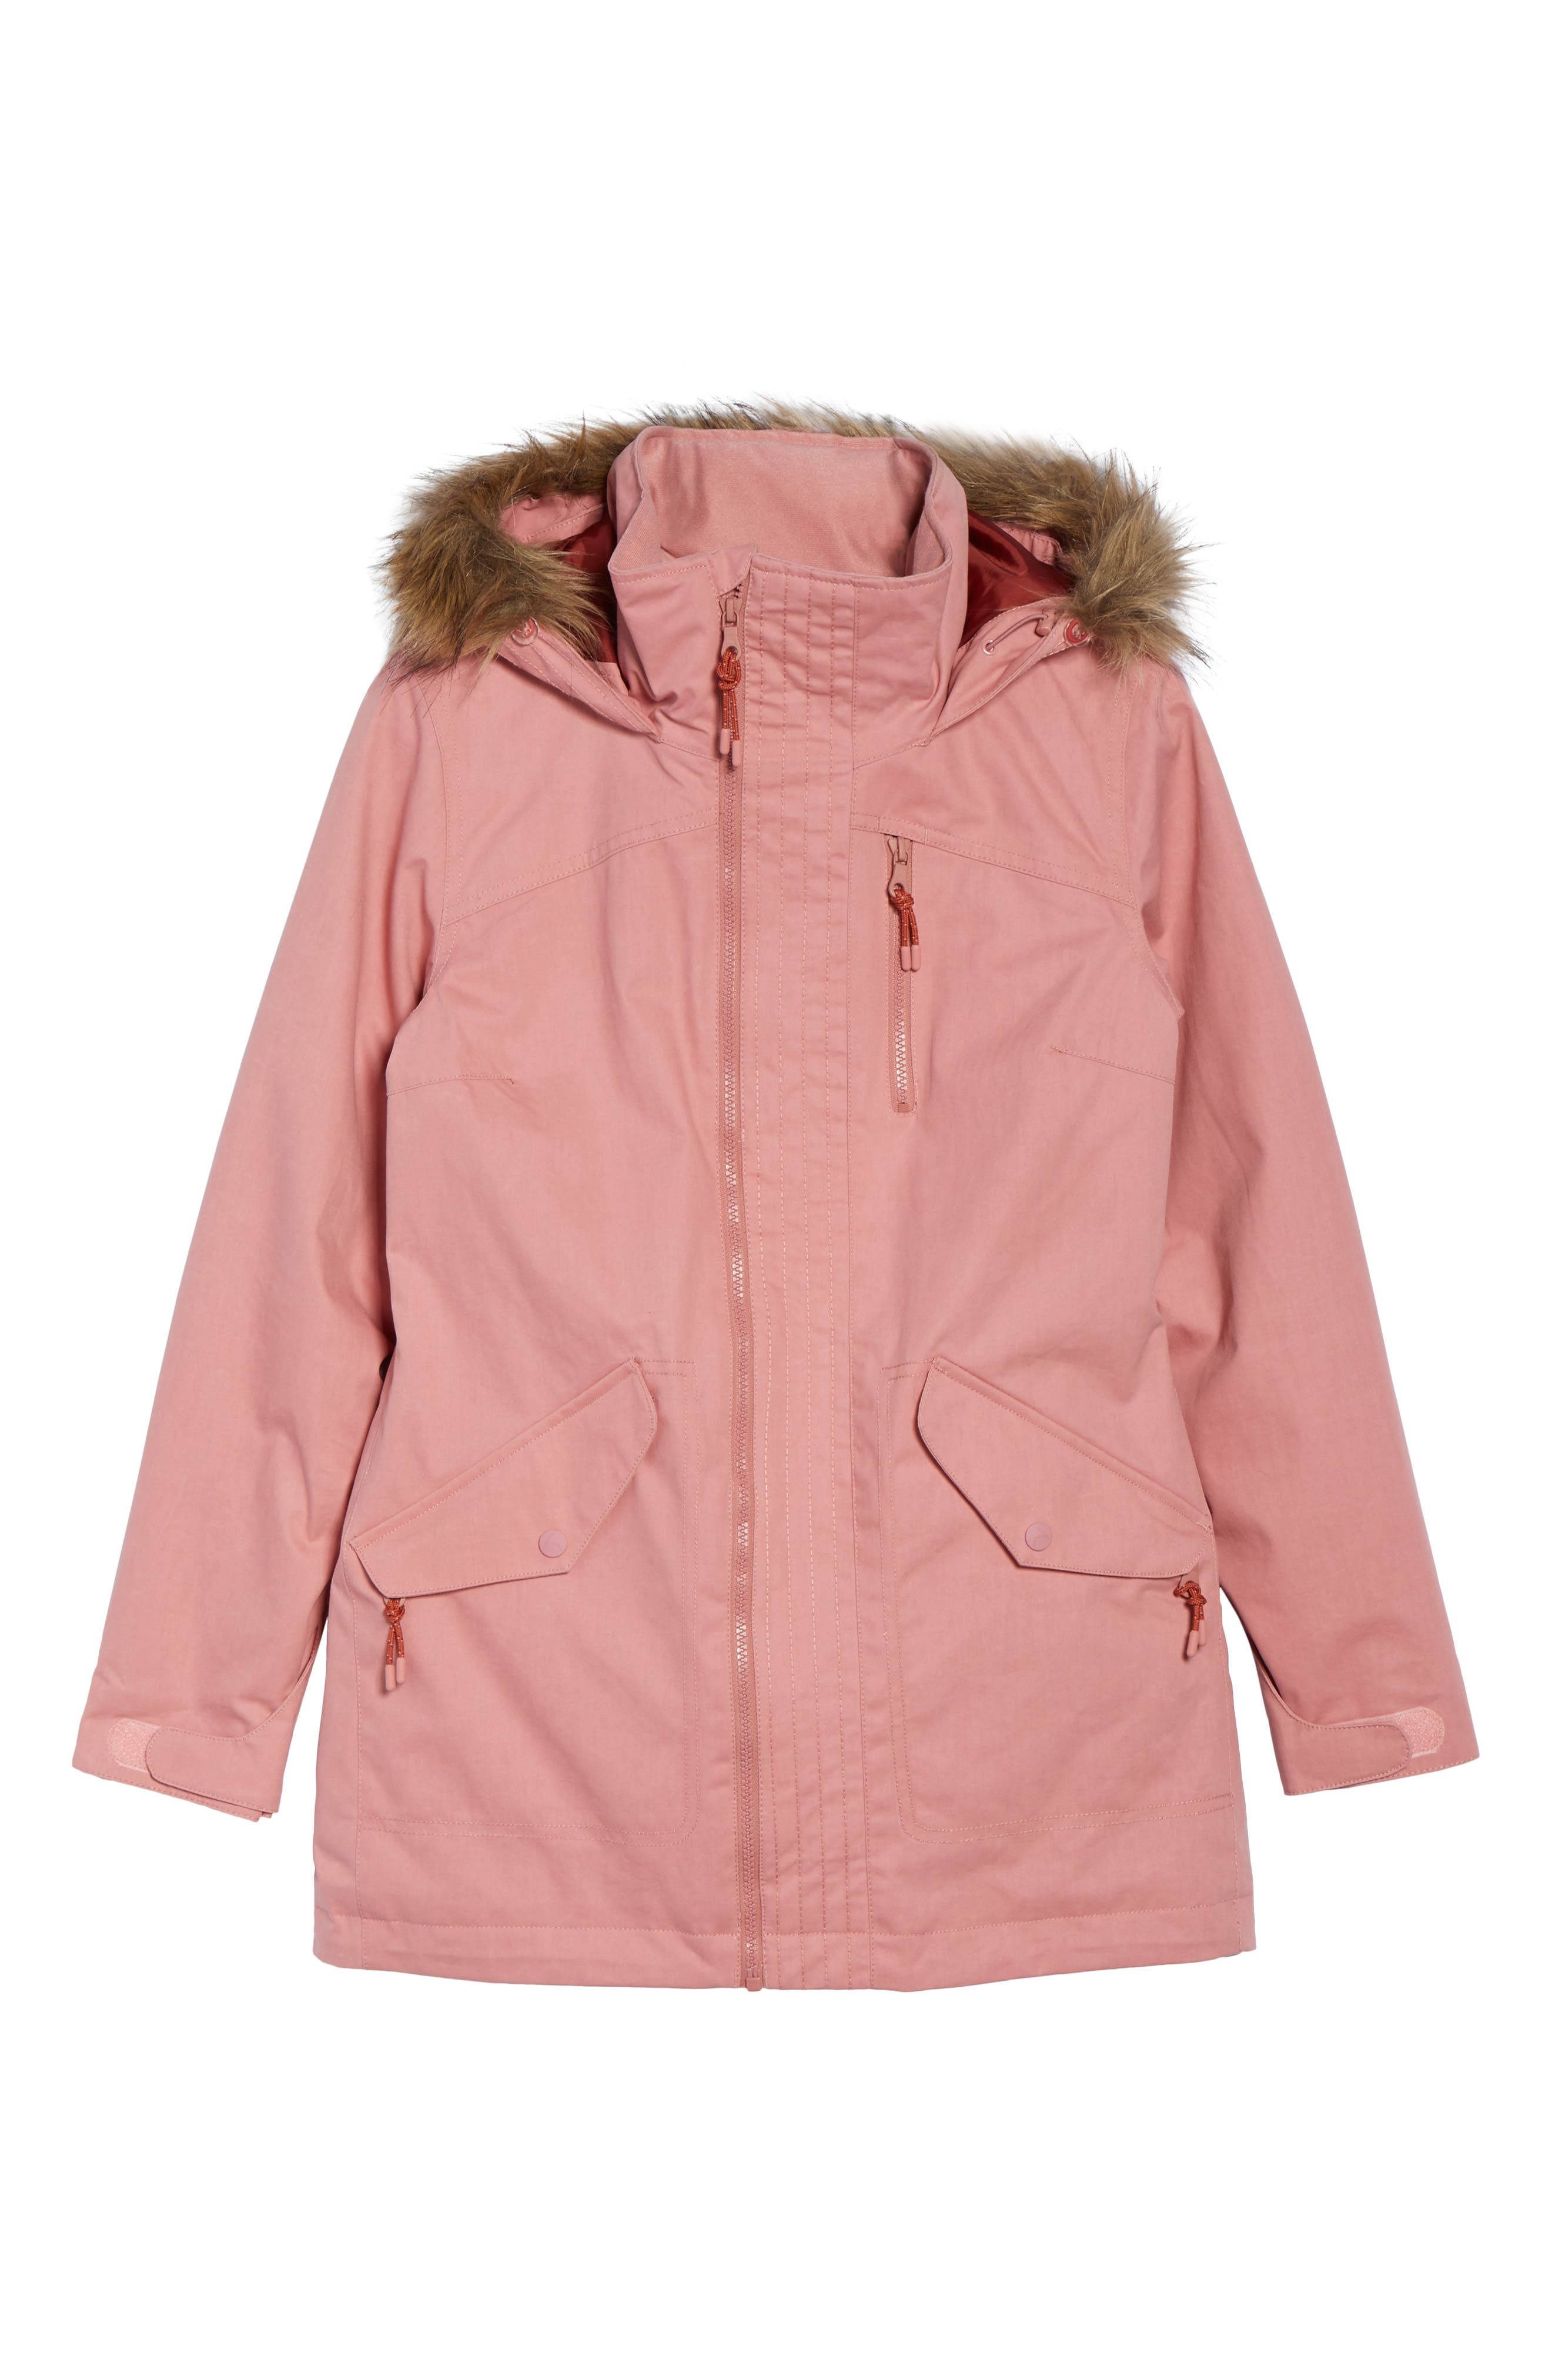 Hazel Waterproof Hooded Jacket with Removable Faux Fur Trim,                             Alternate thumbnail 6, color,                             Dusty Rose Wax